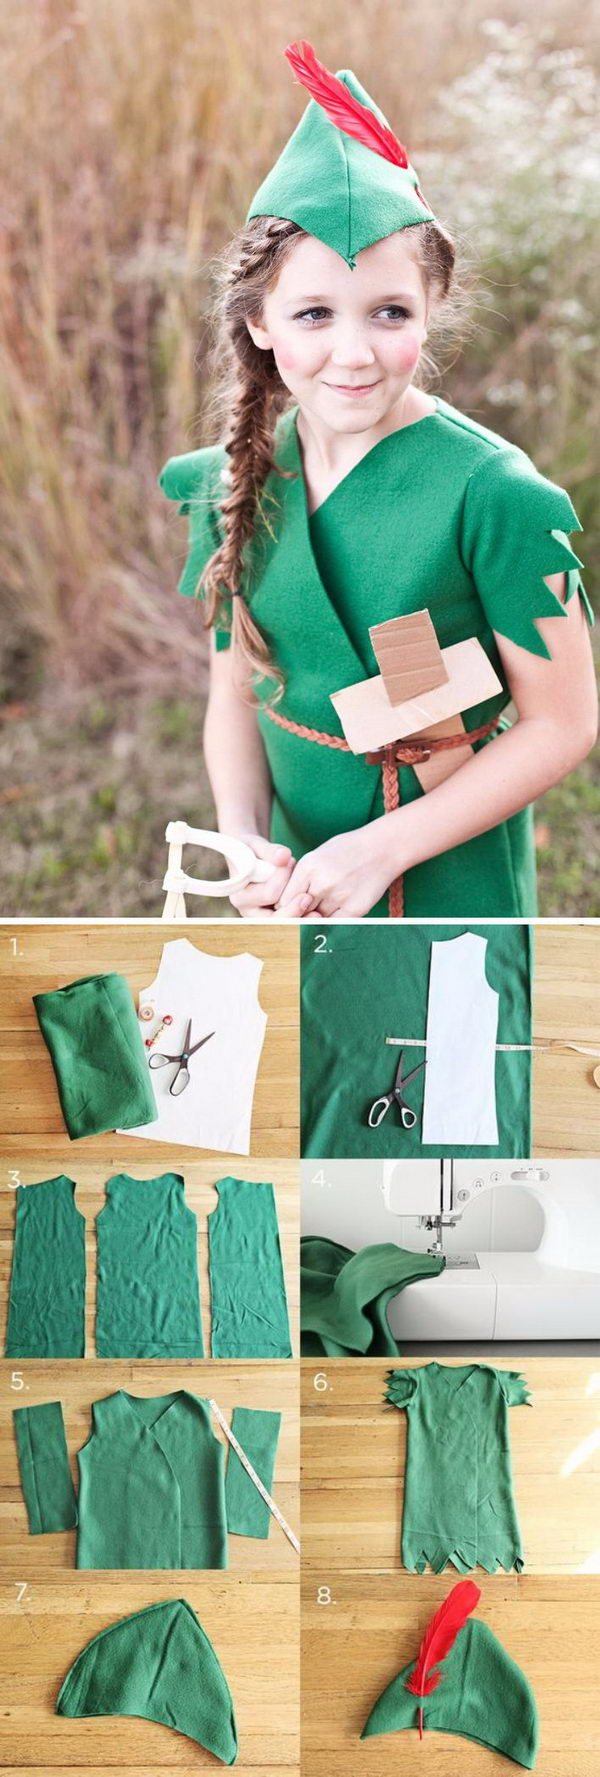 DIY Peter Pan costume.